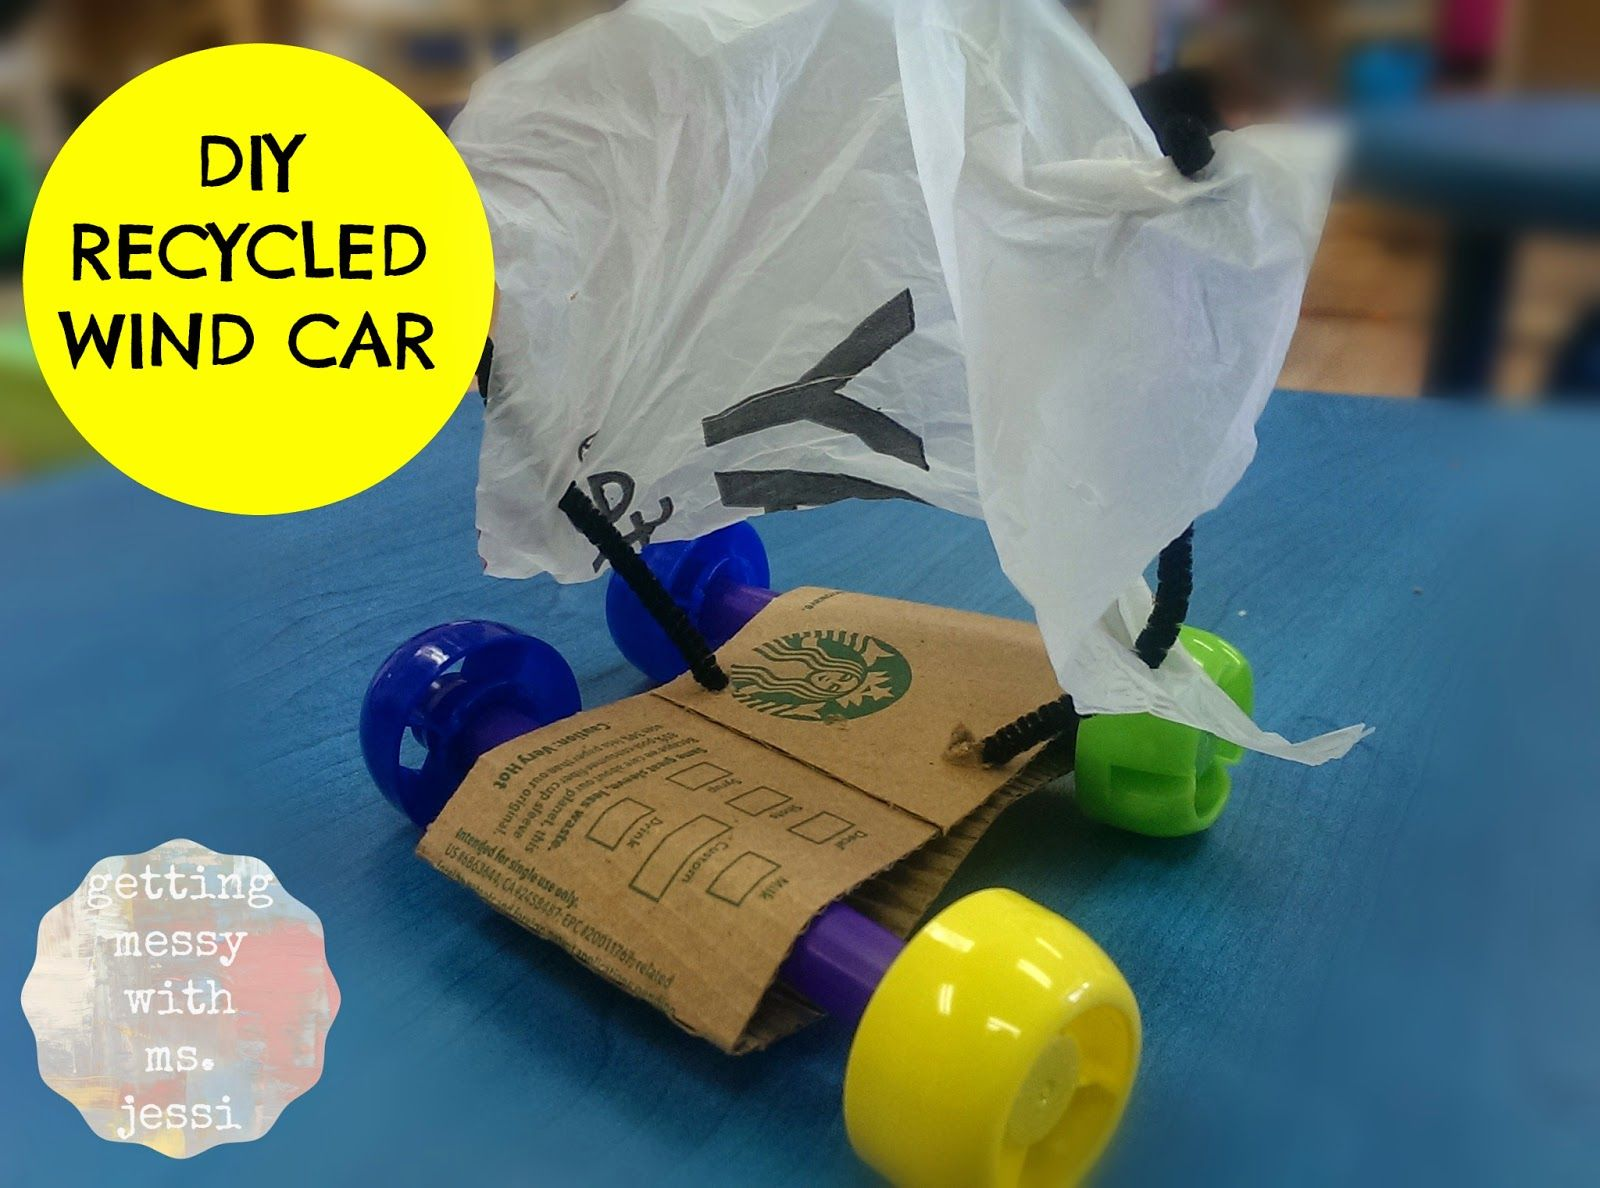 Getting messy with ms jessi diy wind car made by kids for Plastic project ideas